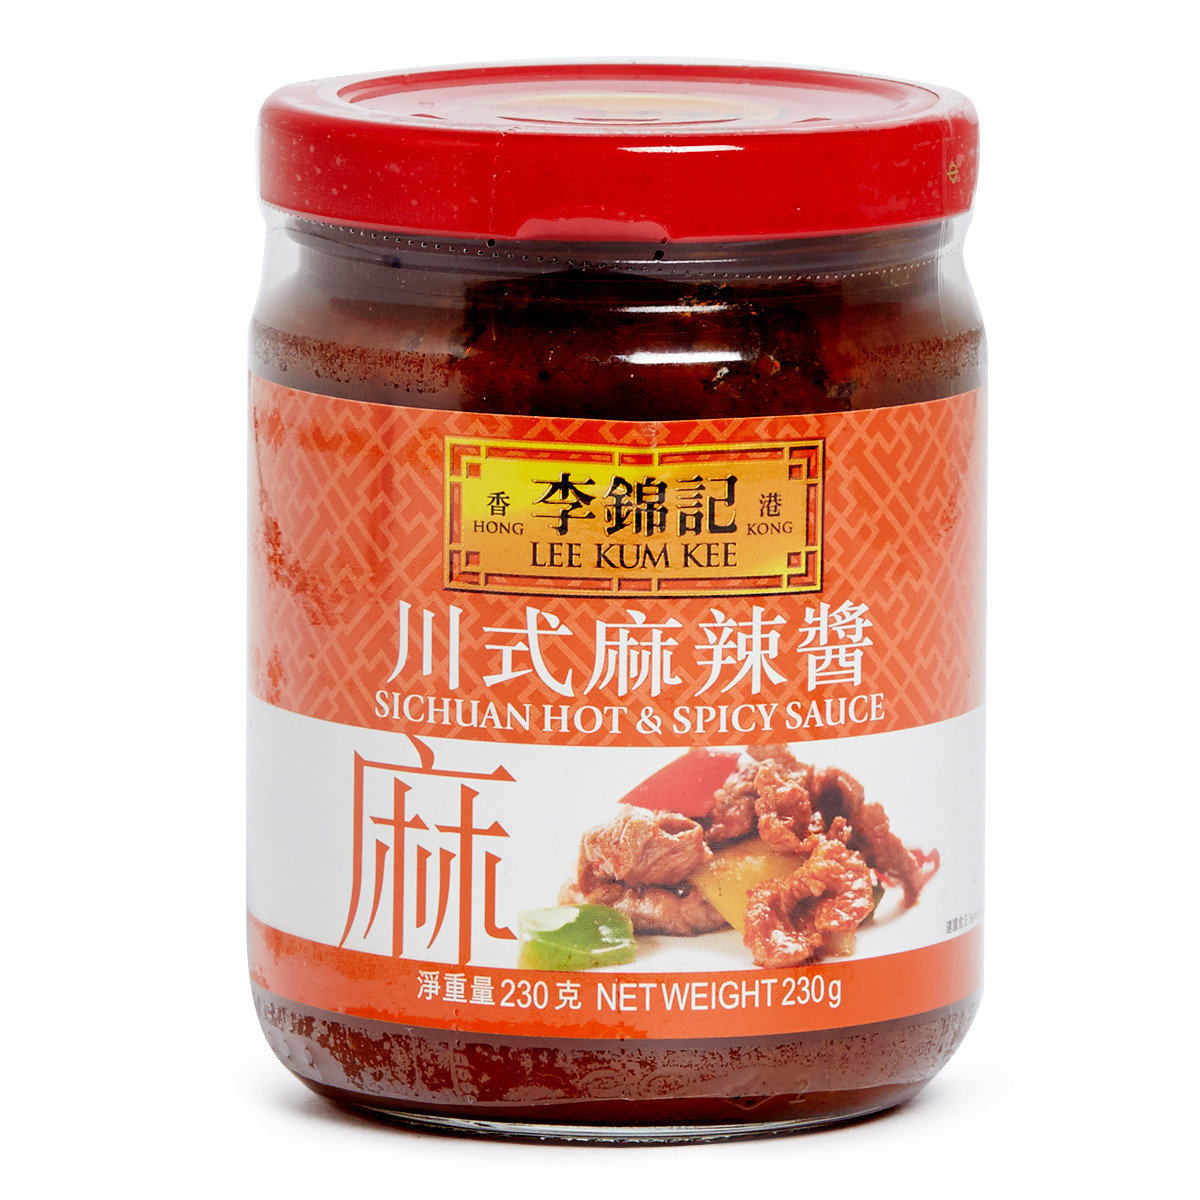 Sichuan Hot and Spicy Sauce